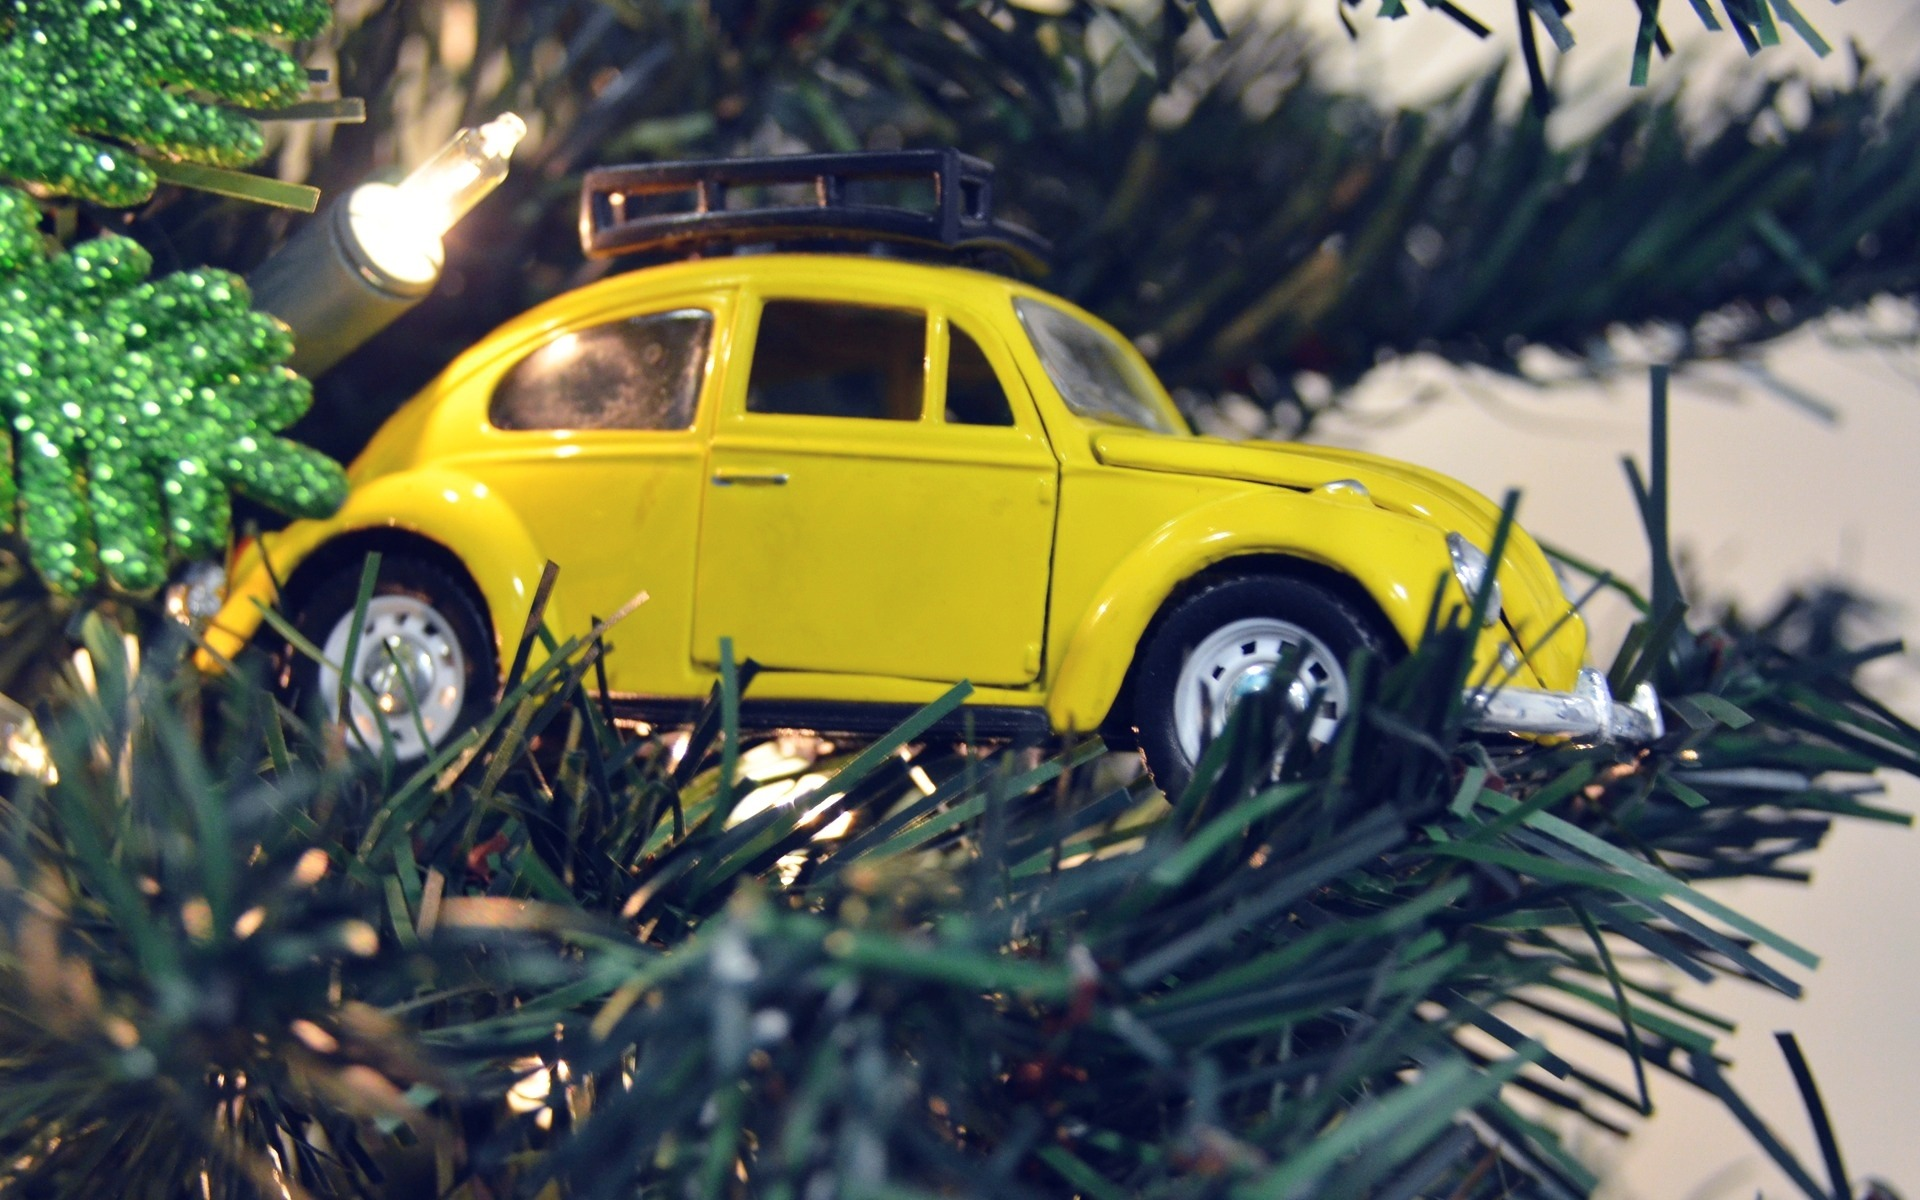 Noël et automobile... quelle belle association!